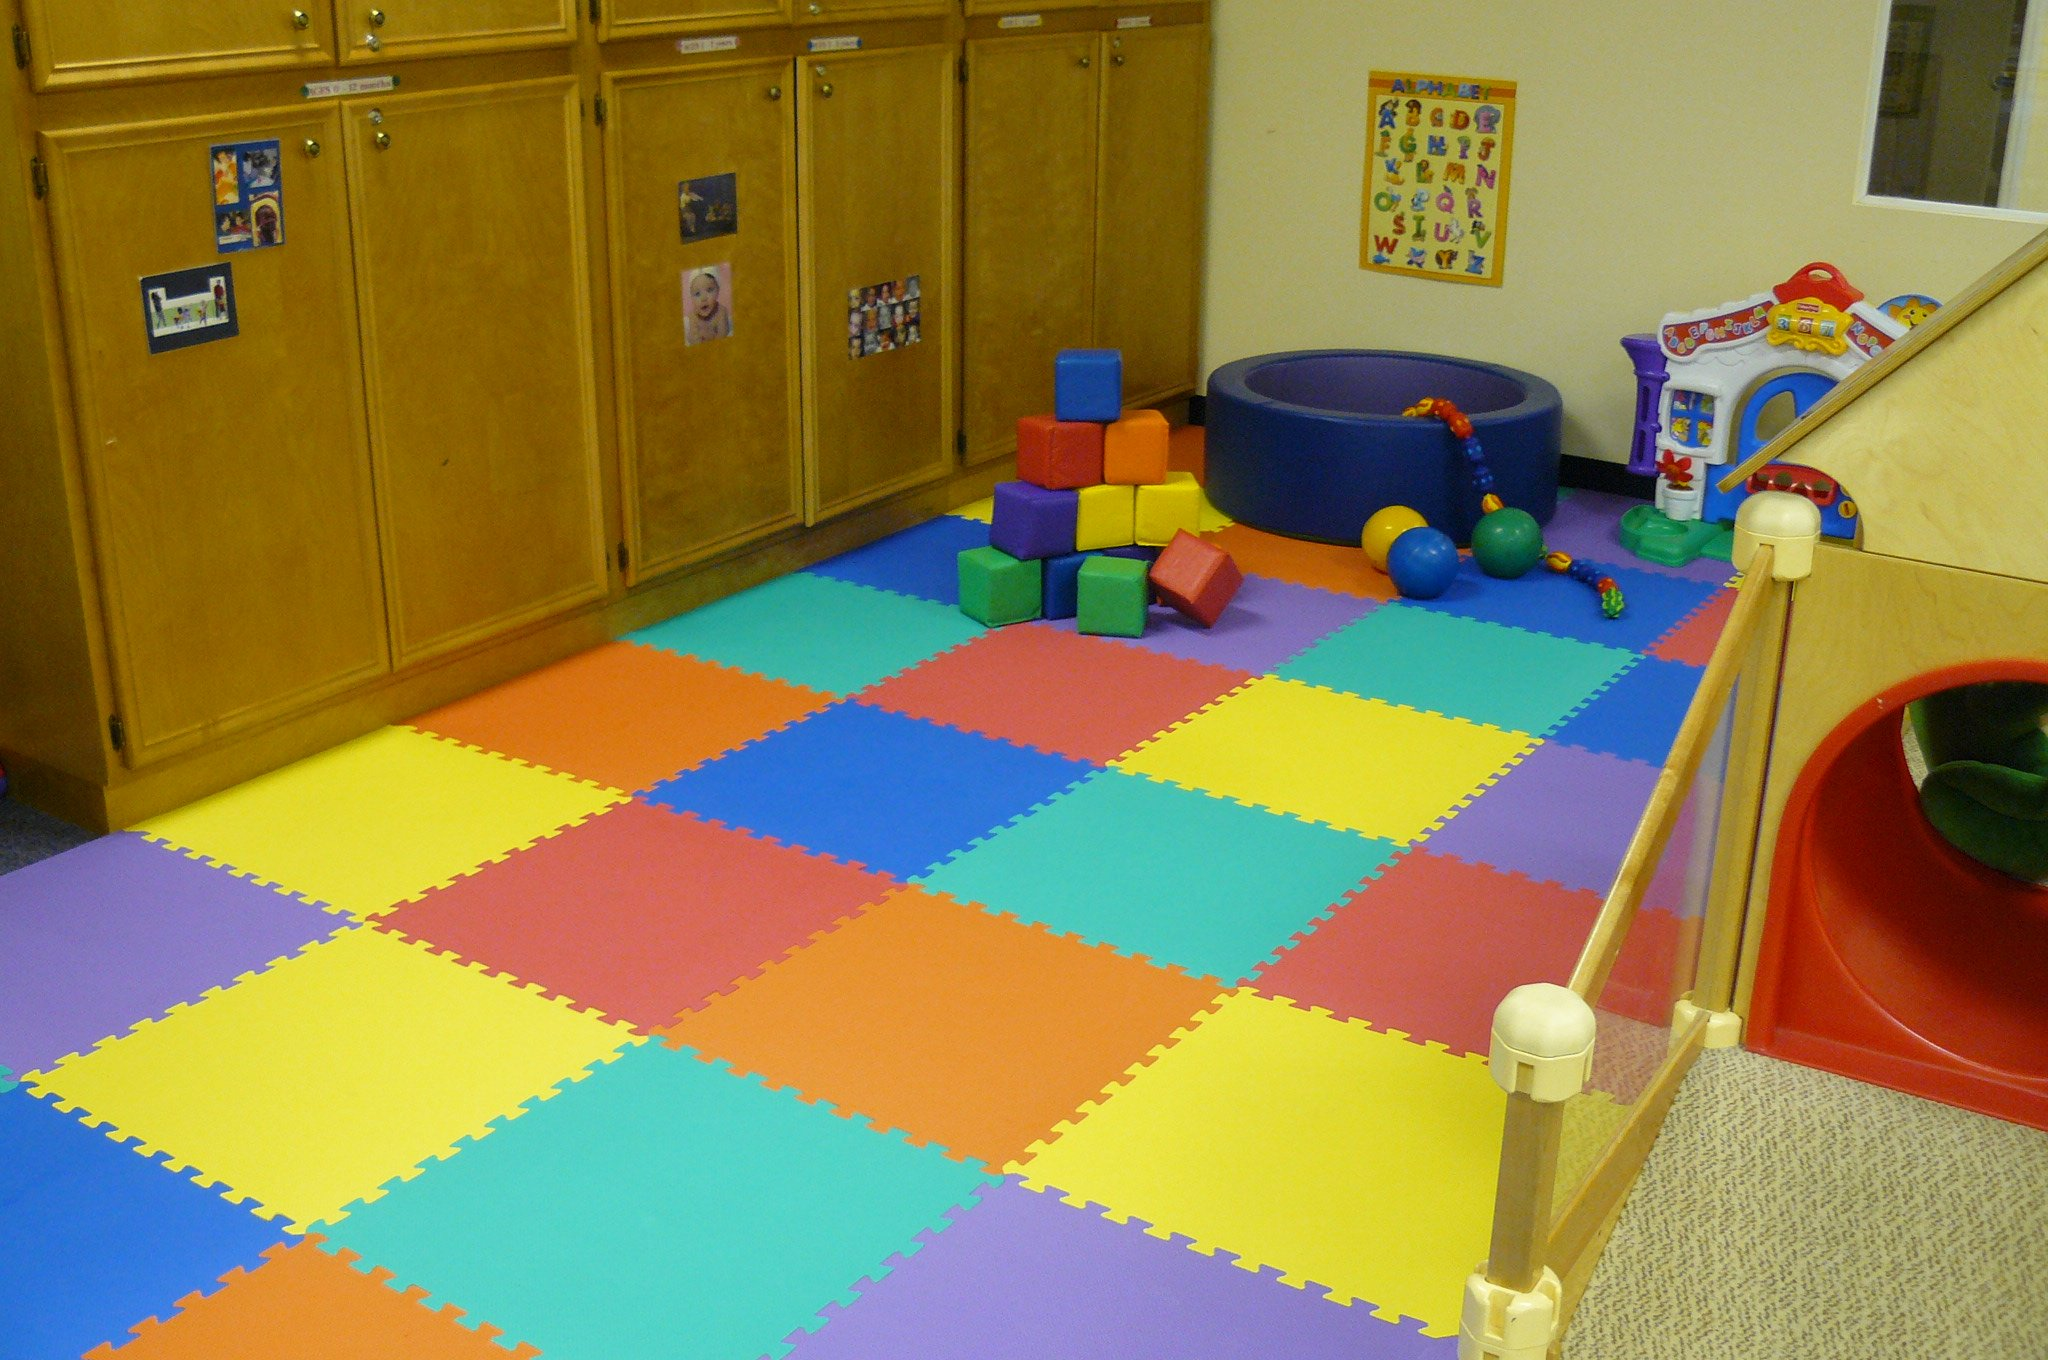 We Sell Mats 1/2-inch Multi-Purpose, Pink, 16 Sq Ft (4 Tiles) by We Sell Mats (Image #8)